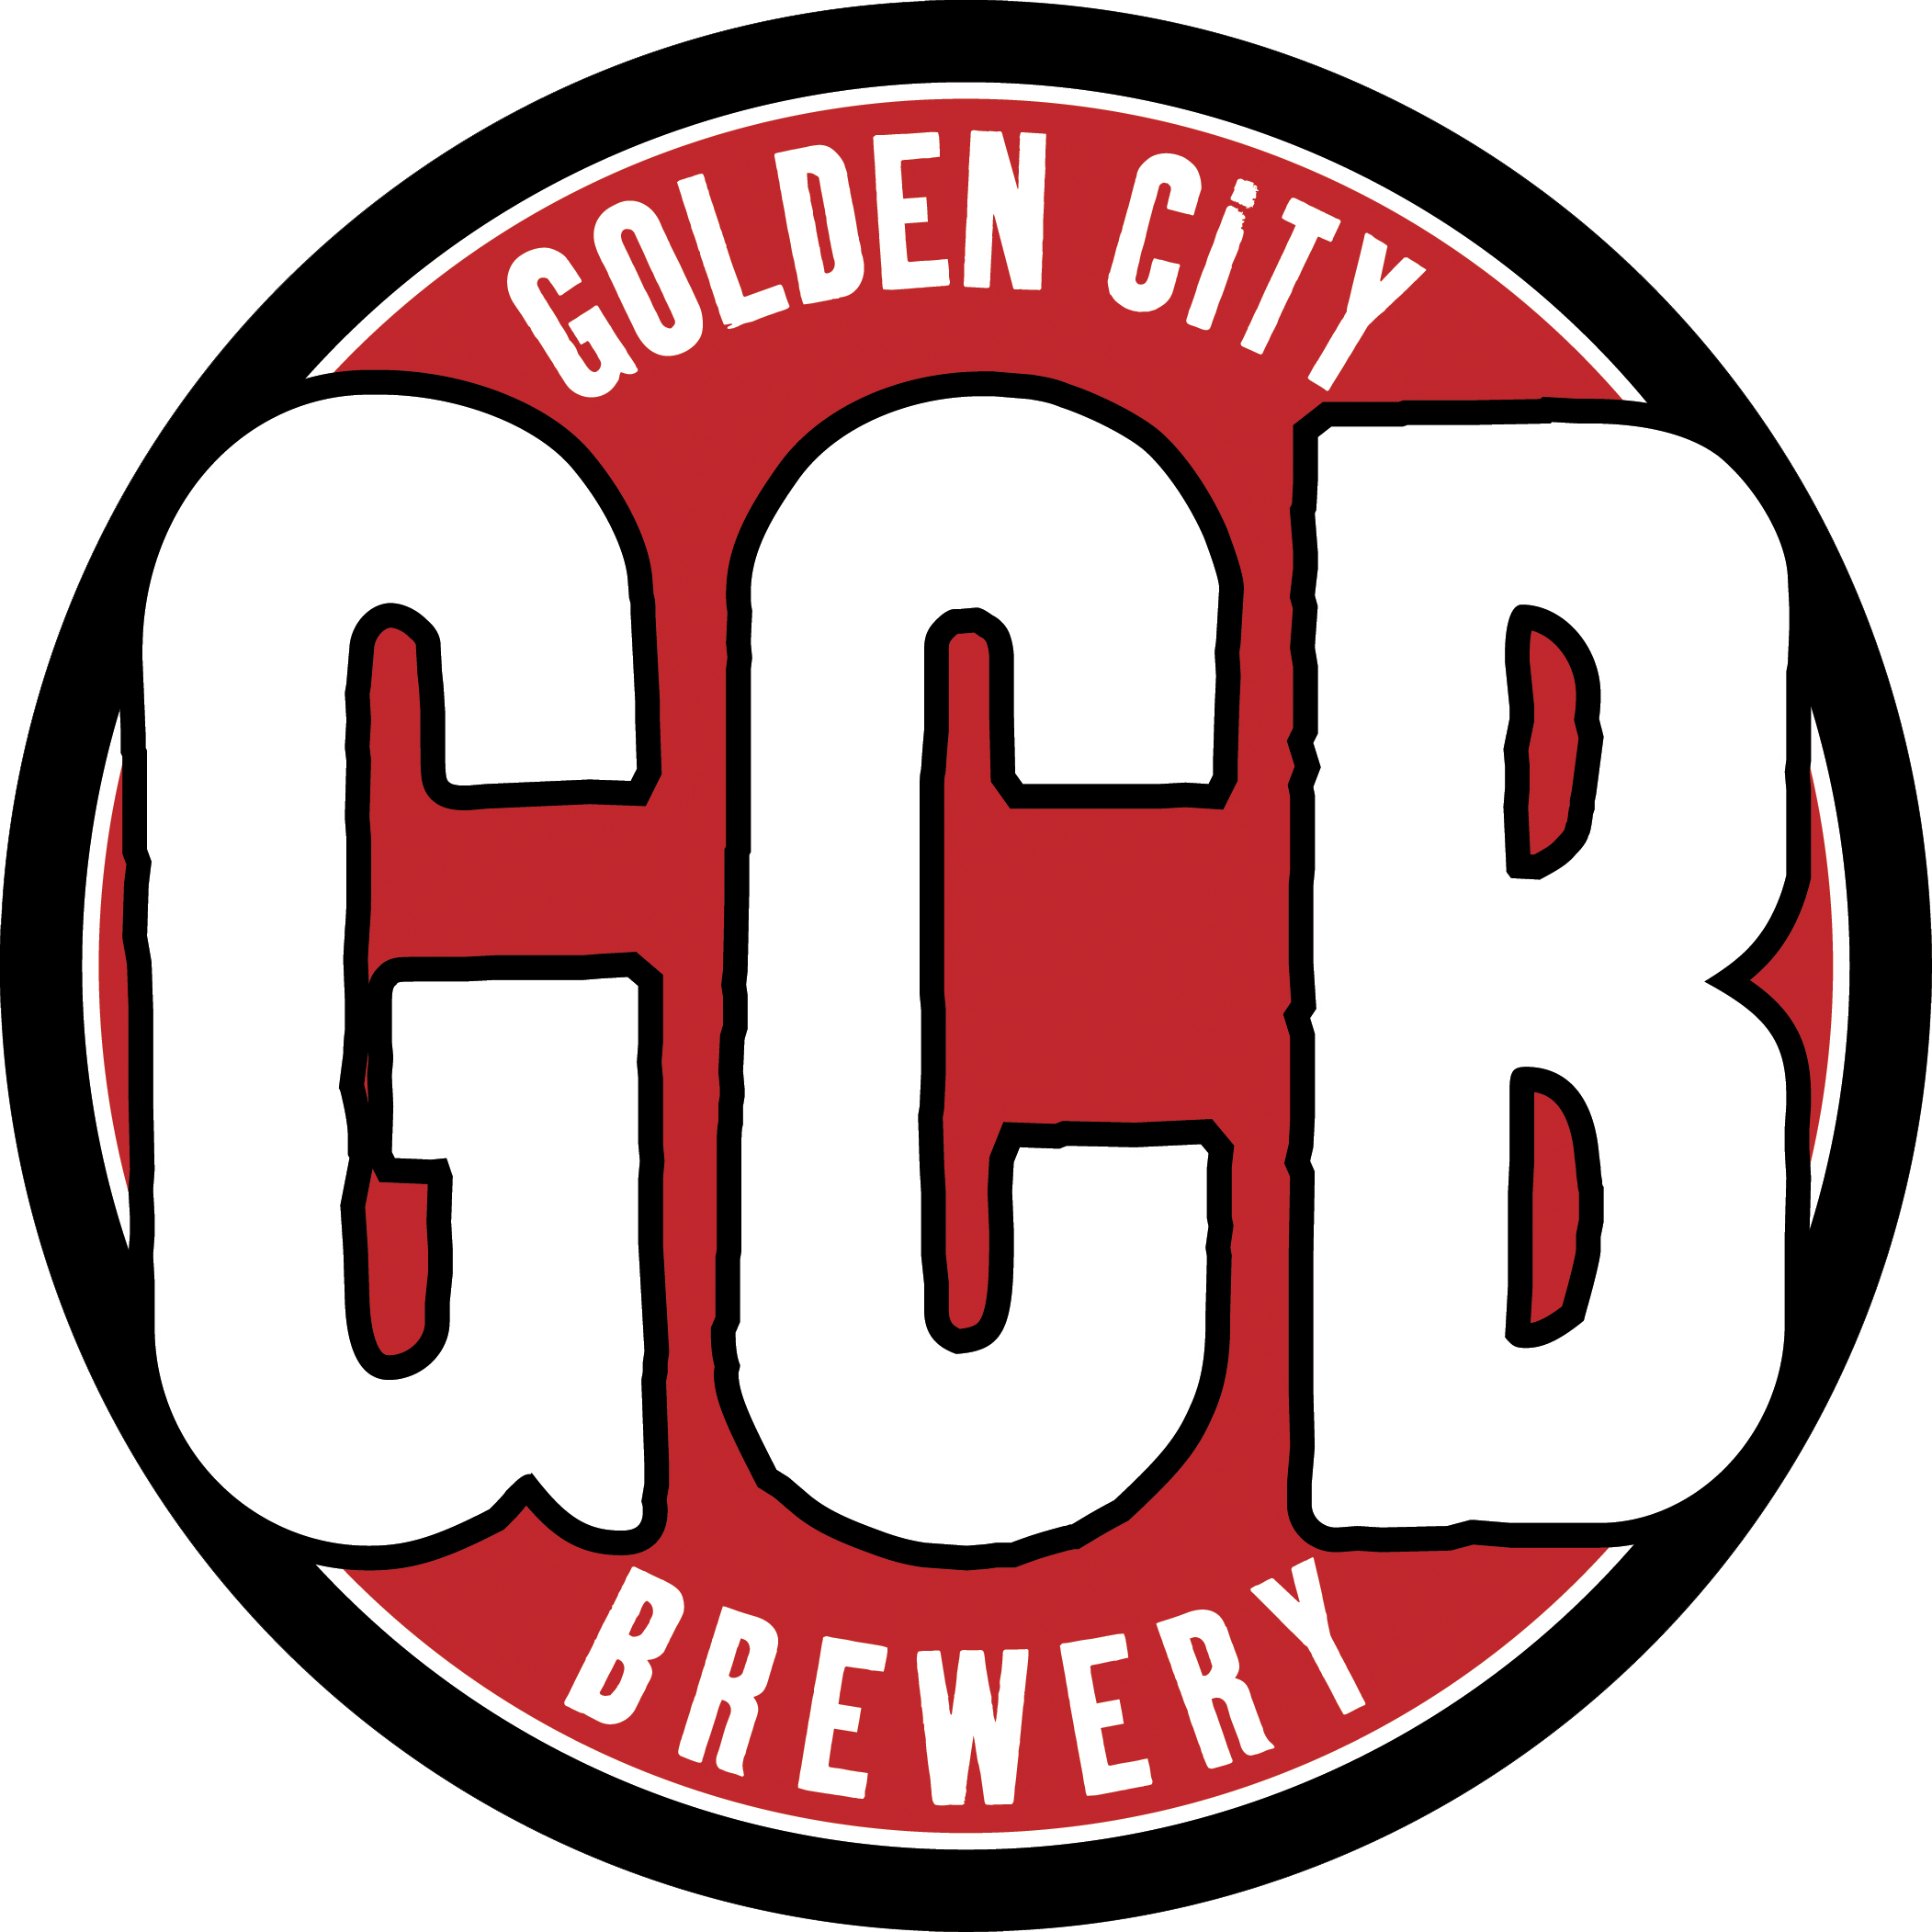 Golden City Brewery